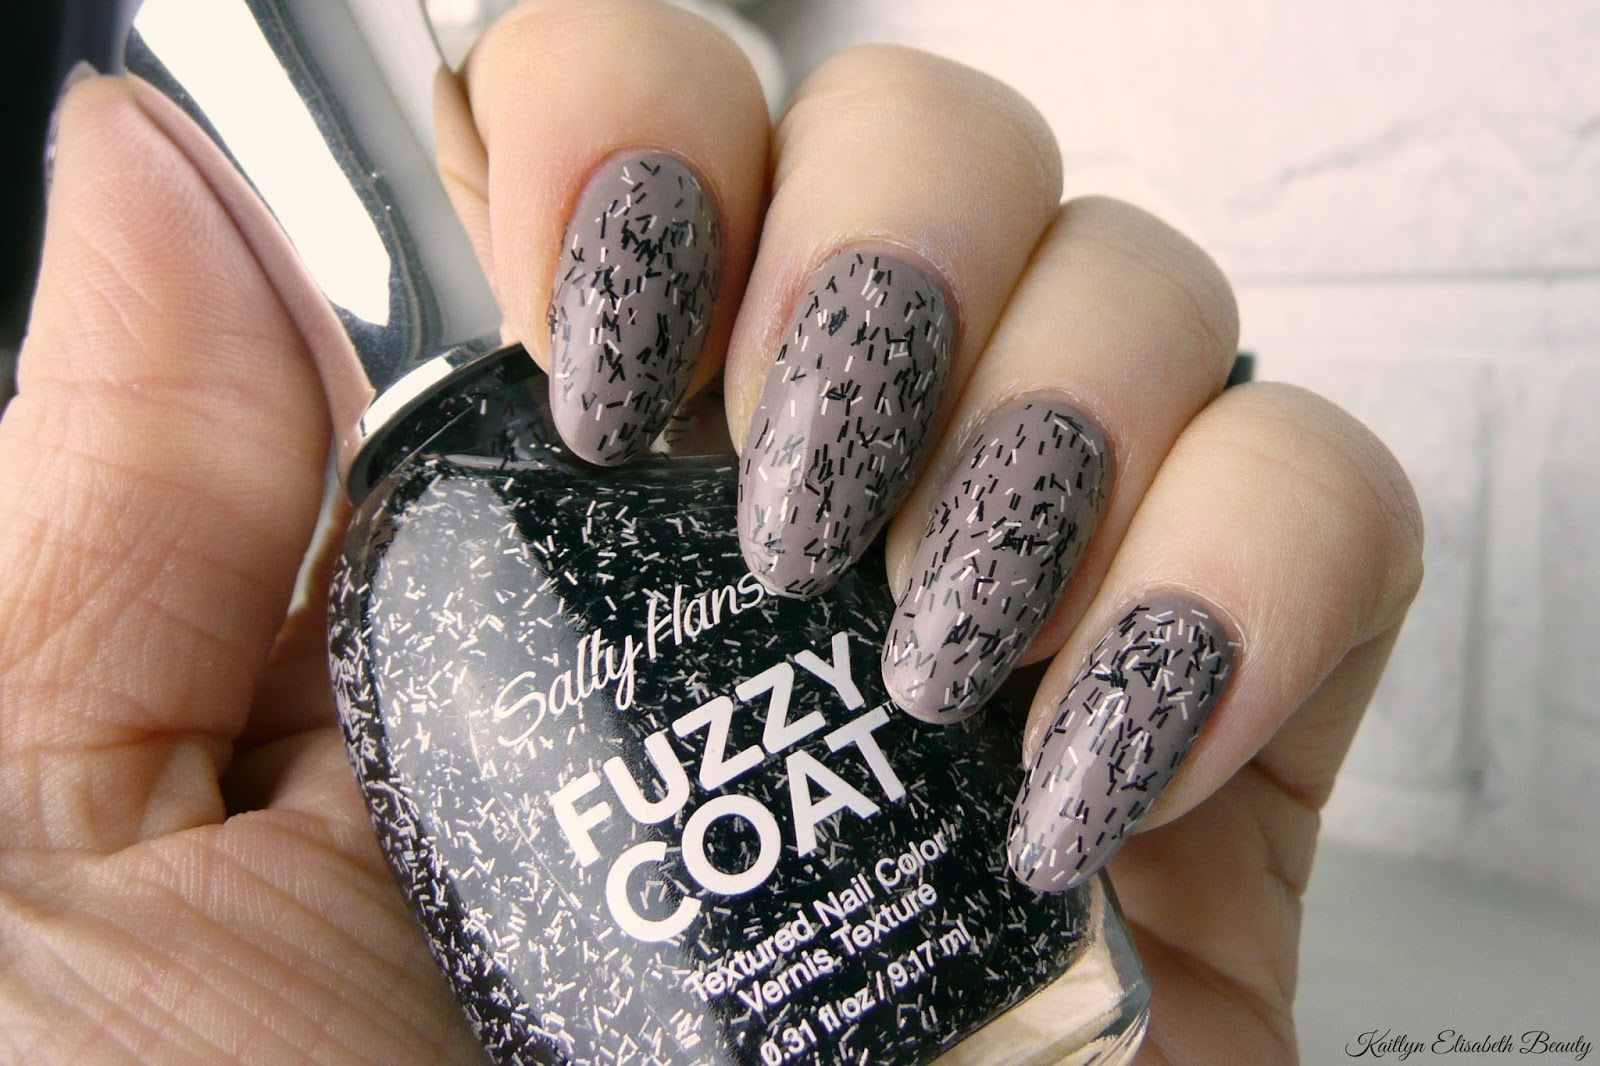 Mani Monday: Sally Hansen Fuzzy Coat | Kaitlyn Elisabeth Beauty